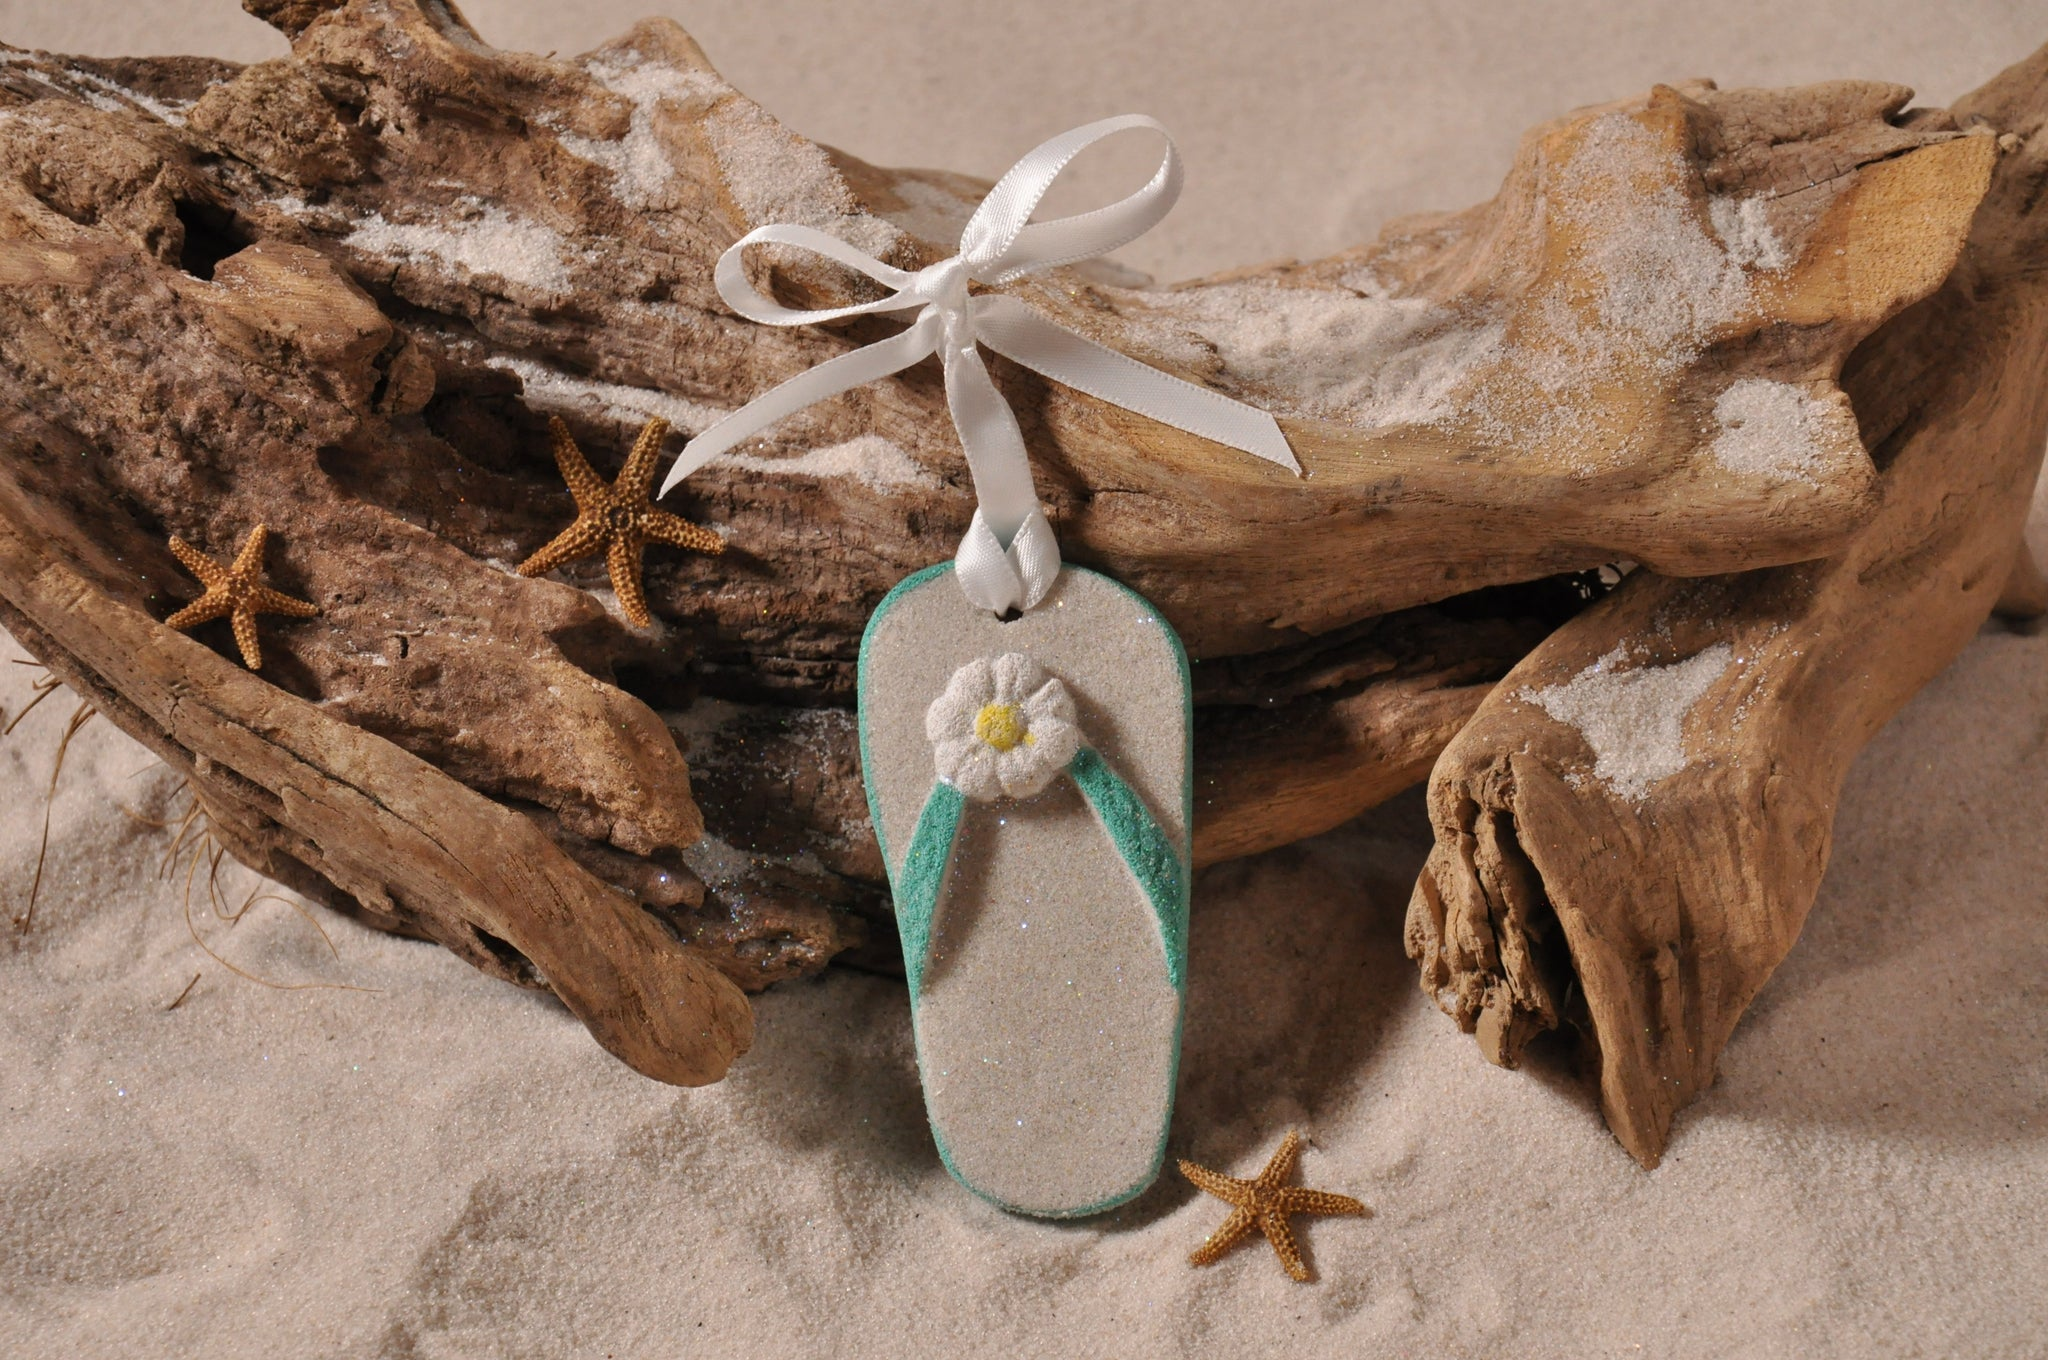 SAND ORNAMENT, CHRISTMAS TREE ORNAMENT, TROPICAL CHRISTMAS DECORATIONS, COASTAL ORNAMENT, SAND ORNAMENT, TROPICAL ORNAMENT, ARENOPHILE, SANTA, CHRISTMAS ORNAMENT, FLORIDA, BEACH, FLIP FLOP